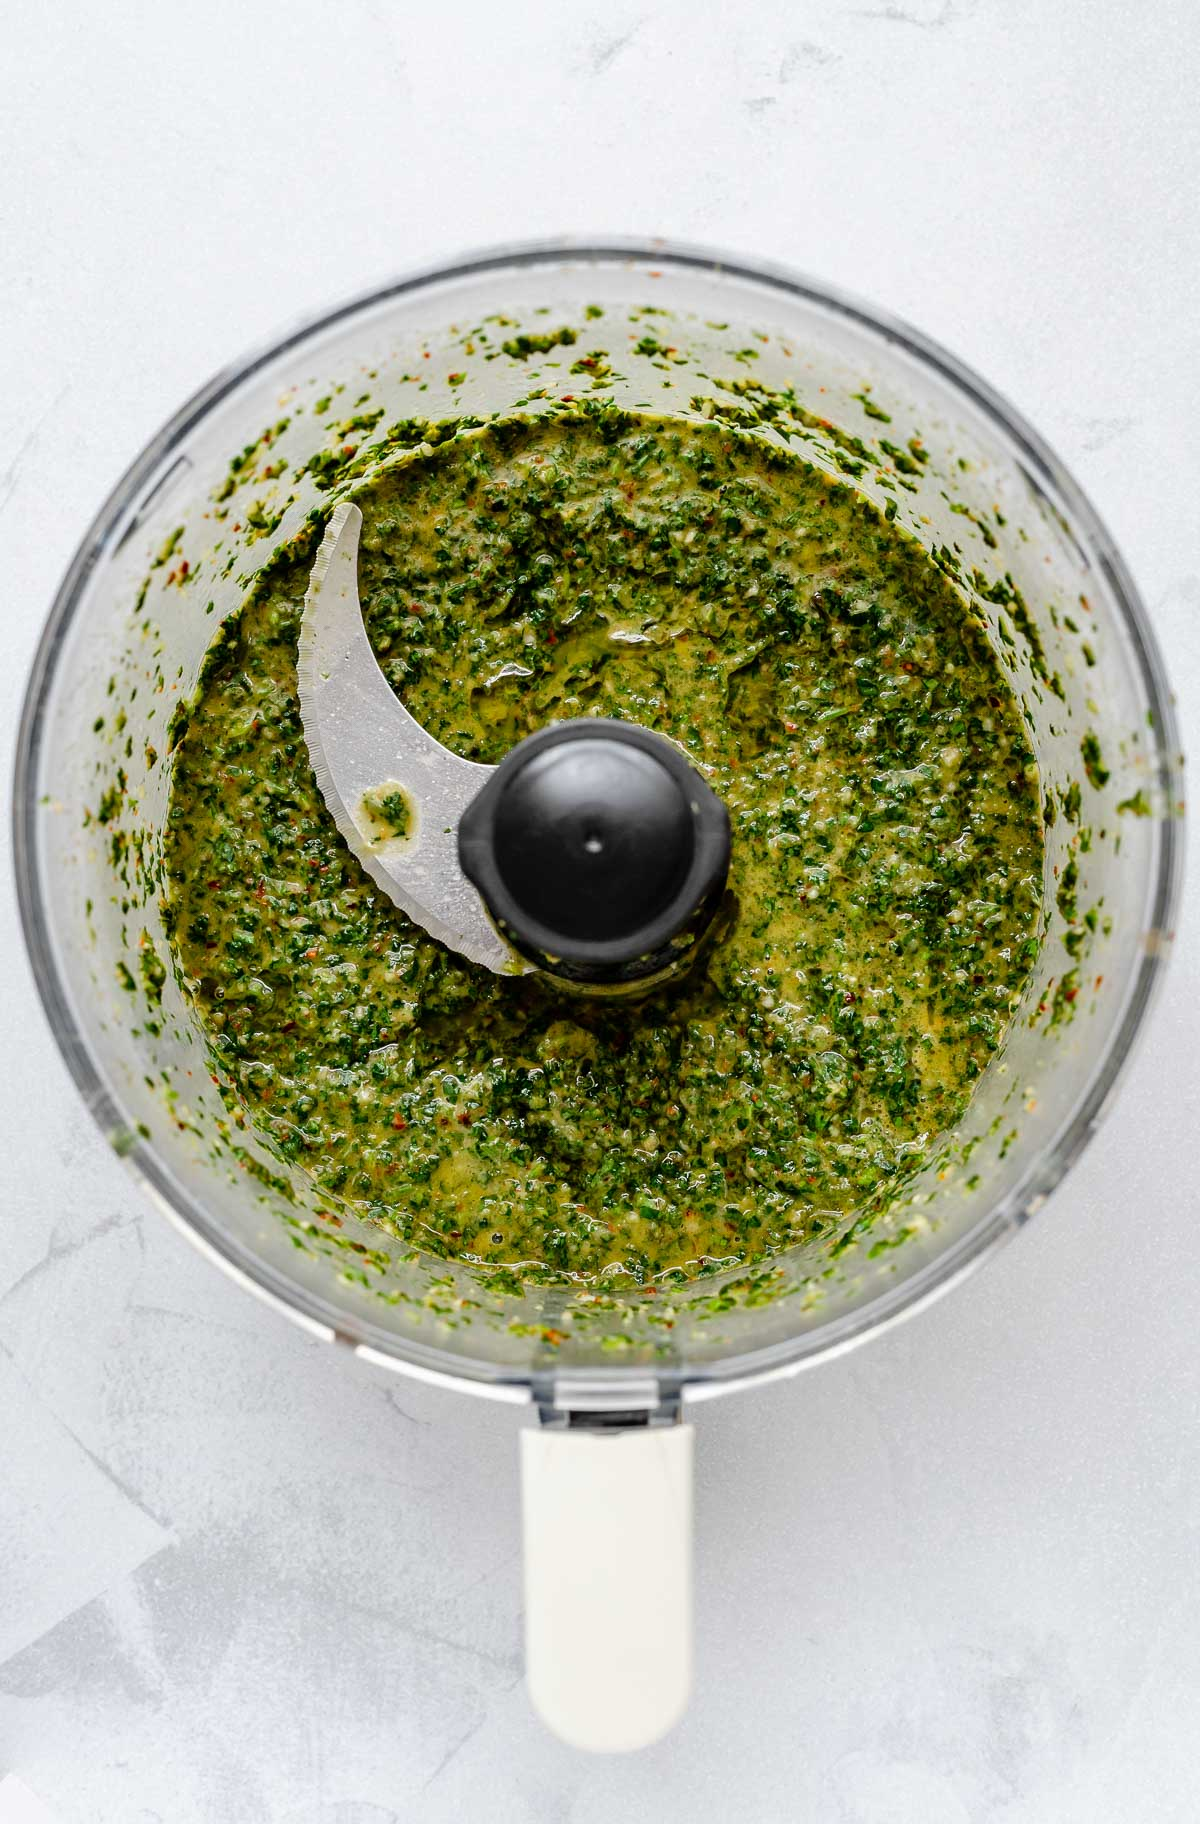 A top down photo of easy Chimichurri sauce that has been pulsed in a food processor bowl. The bowl sits on a light gray surface.